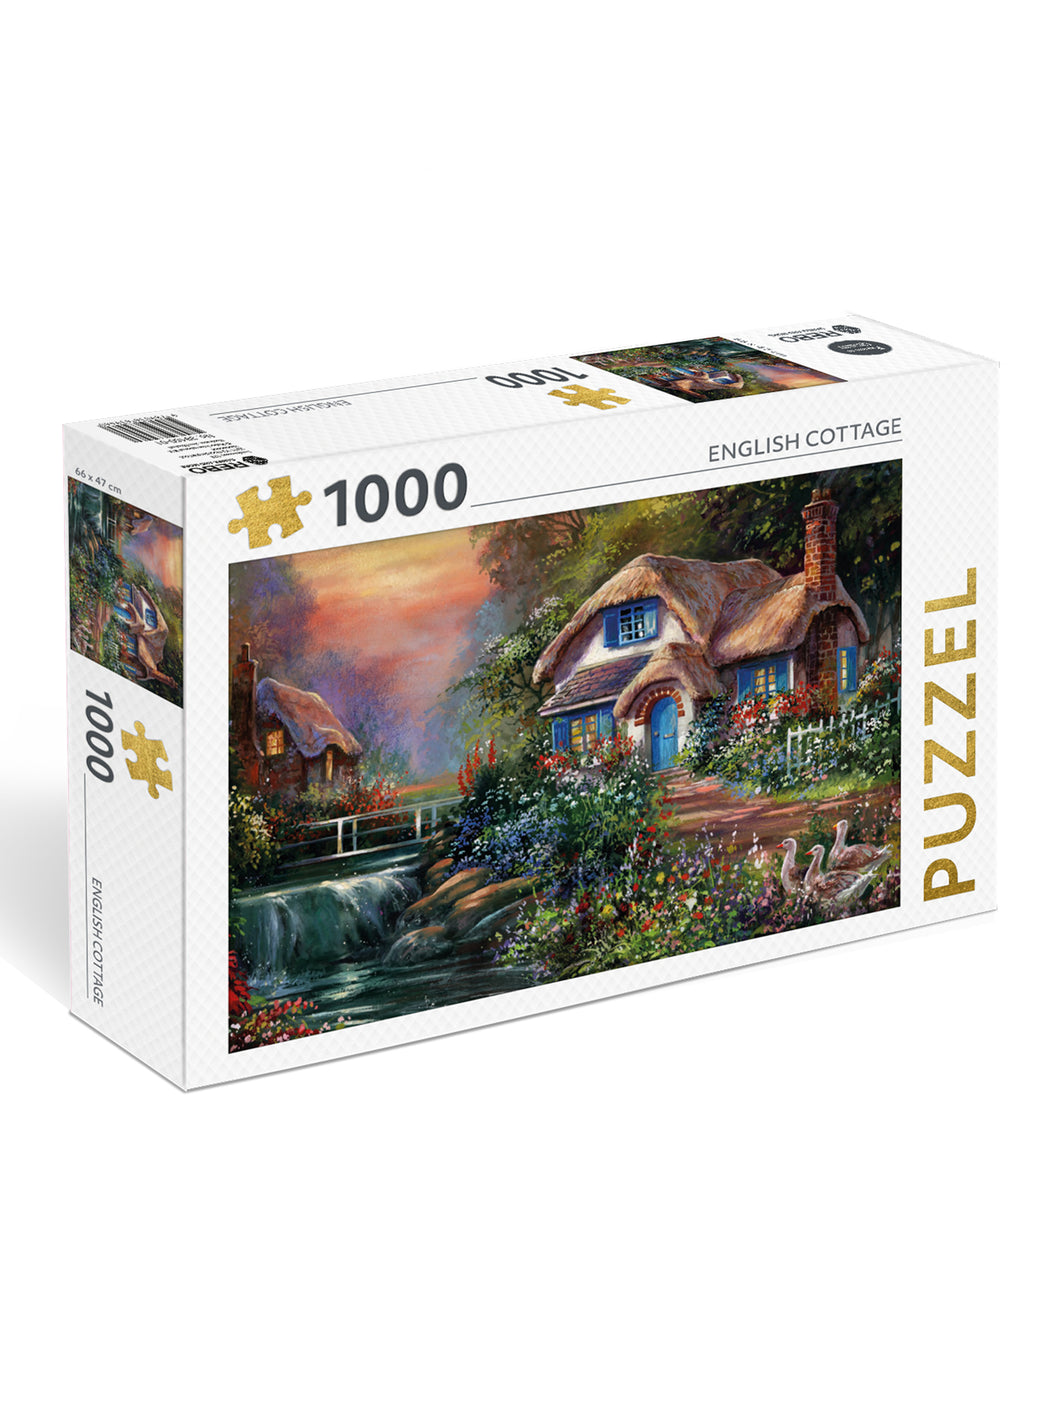 Puzzel English Cottage (1000) - Boekenmarkt de Markies